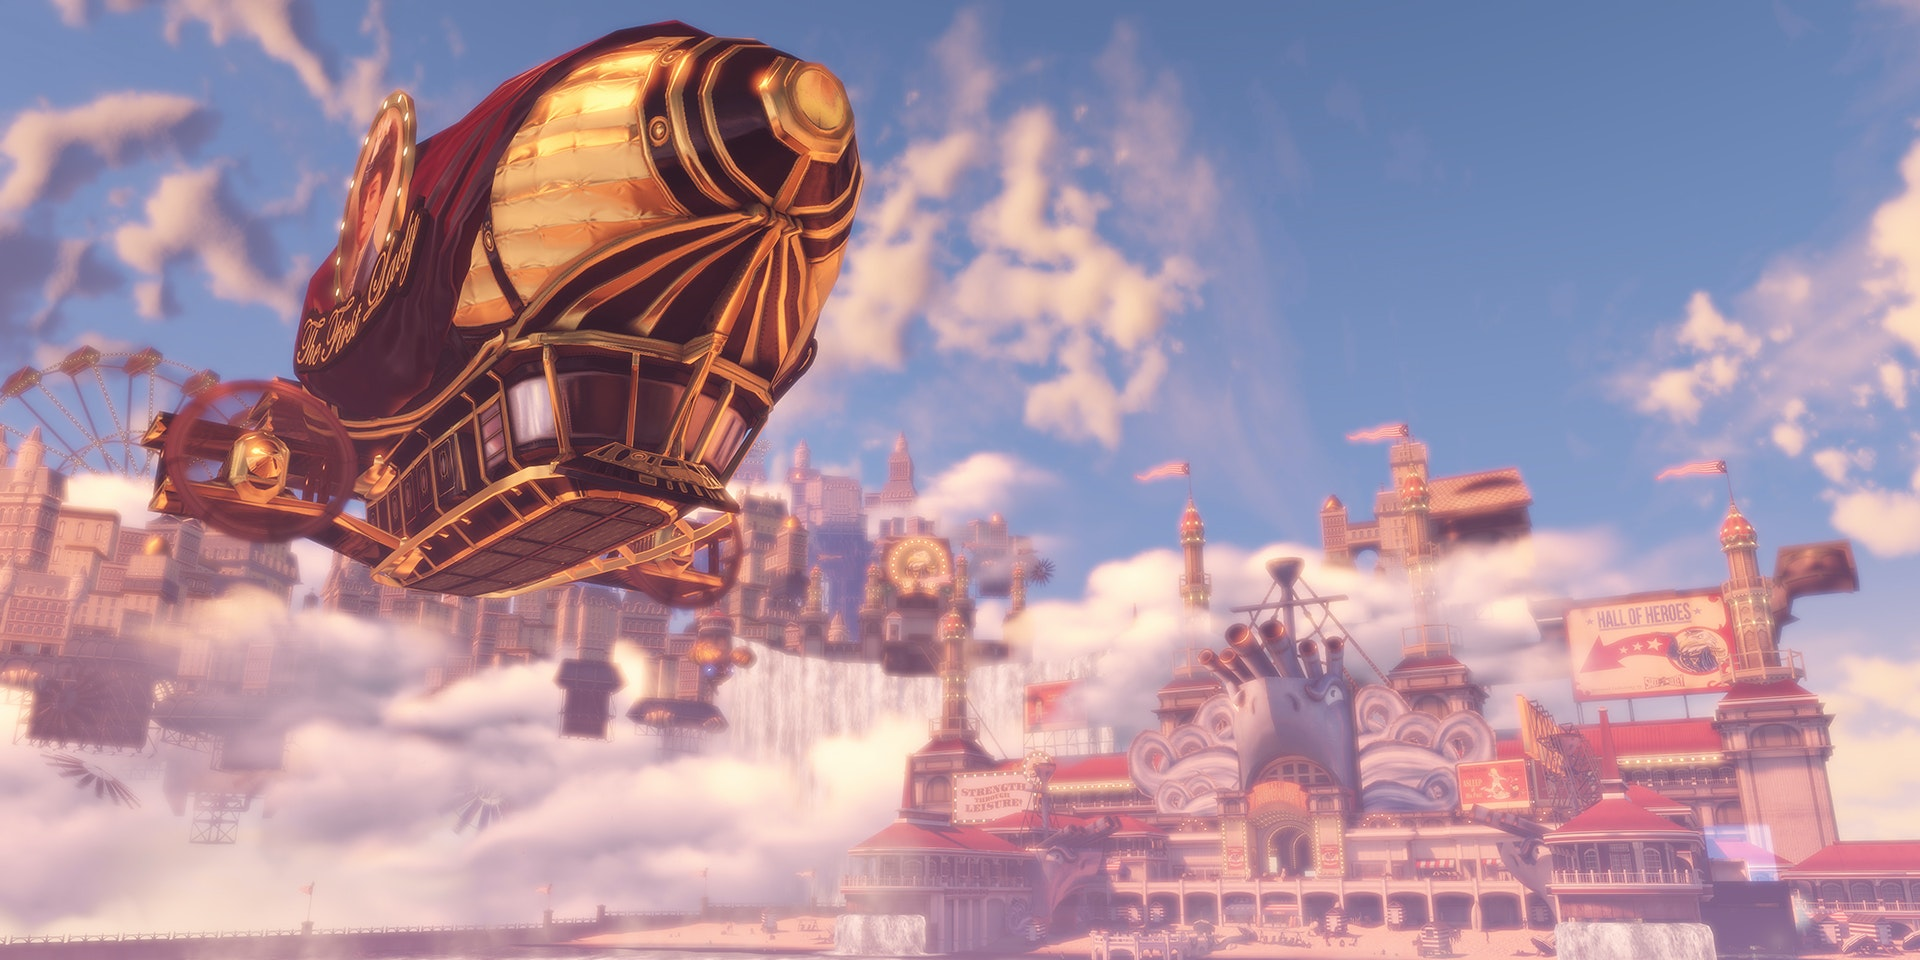 The Floating City In 'BioShock Infinite' Could Exist IRL